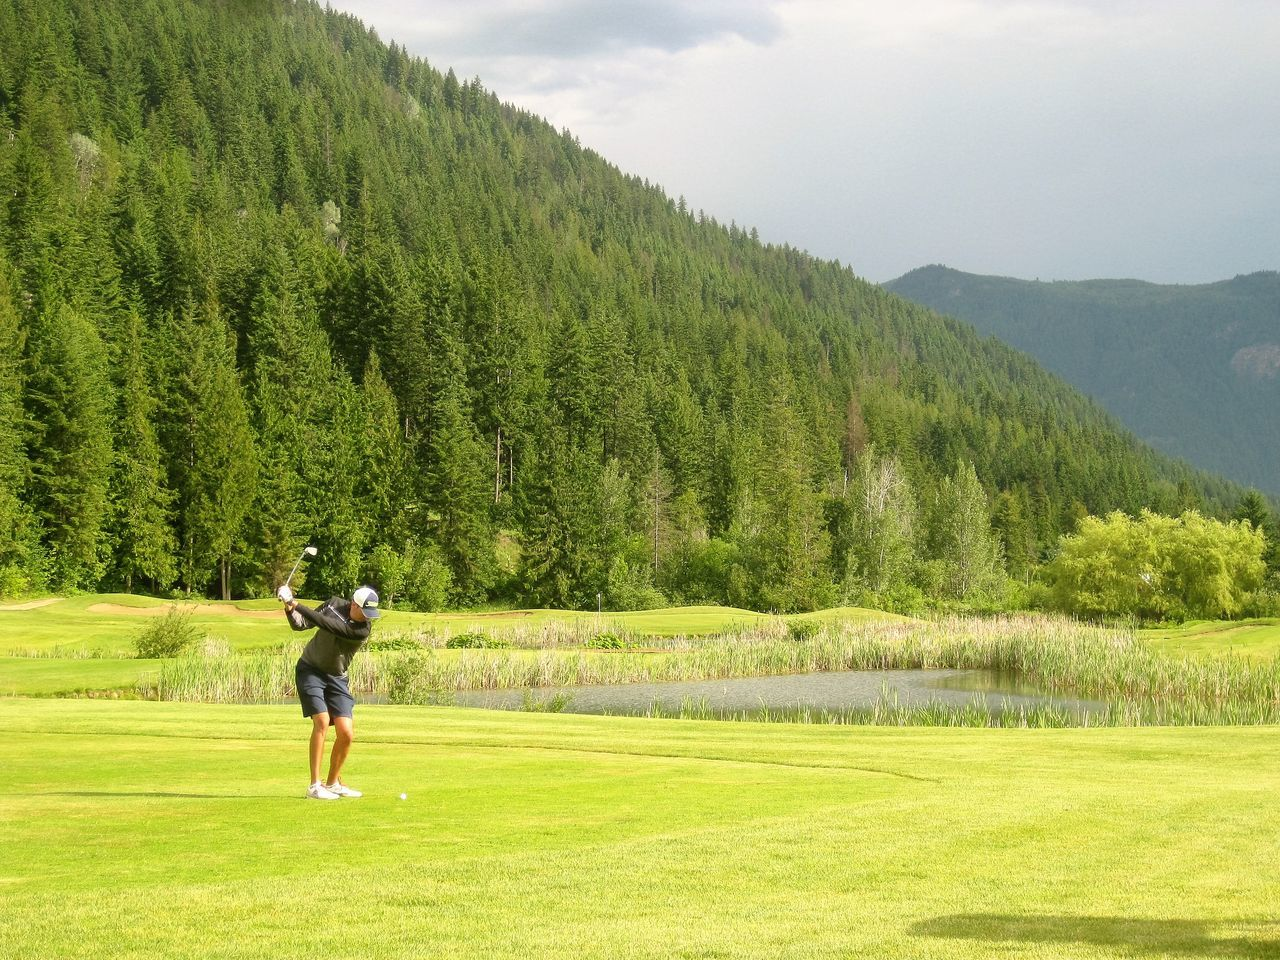 Golf Course Golf Swing Hyde Mountain Lake Mara Lake Mountain Pine Scenics Tree